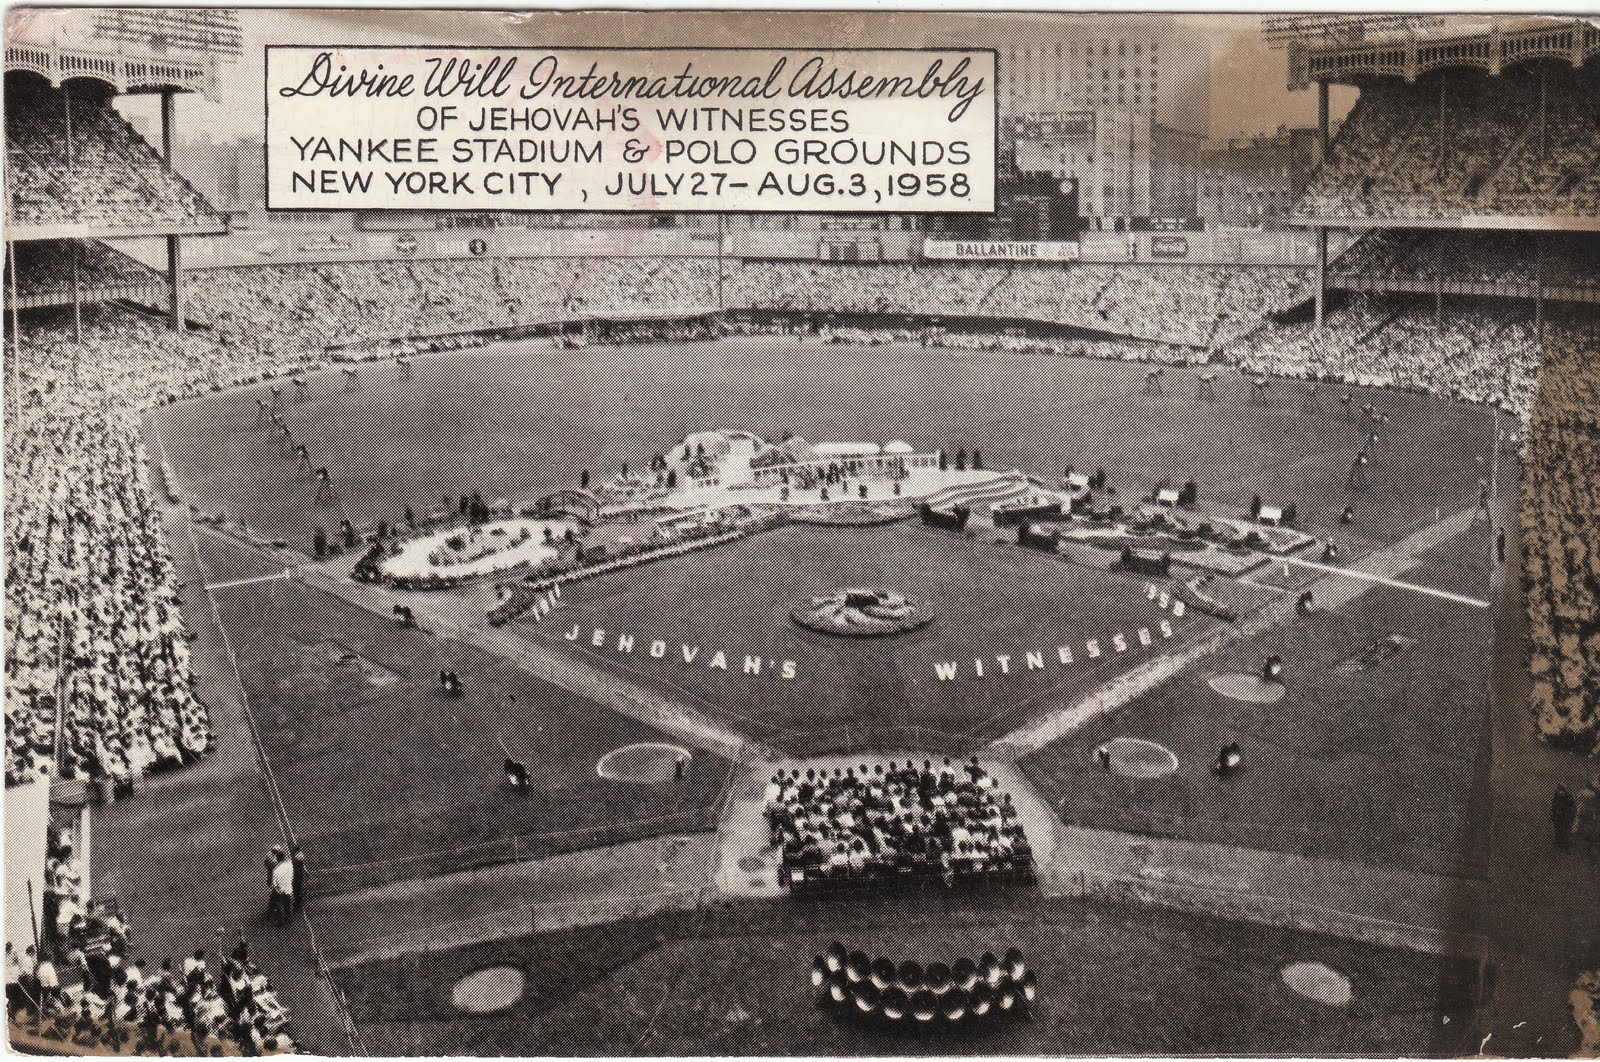 On This Date, Jehovah's Witnesses Made Yankee Stadium History